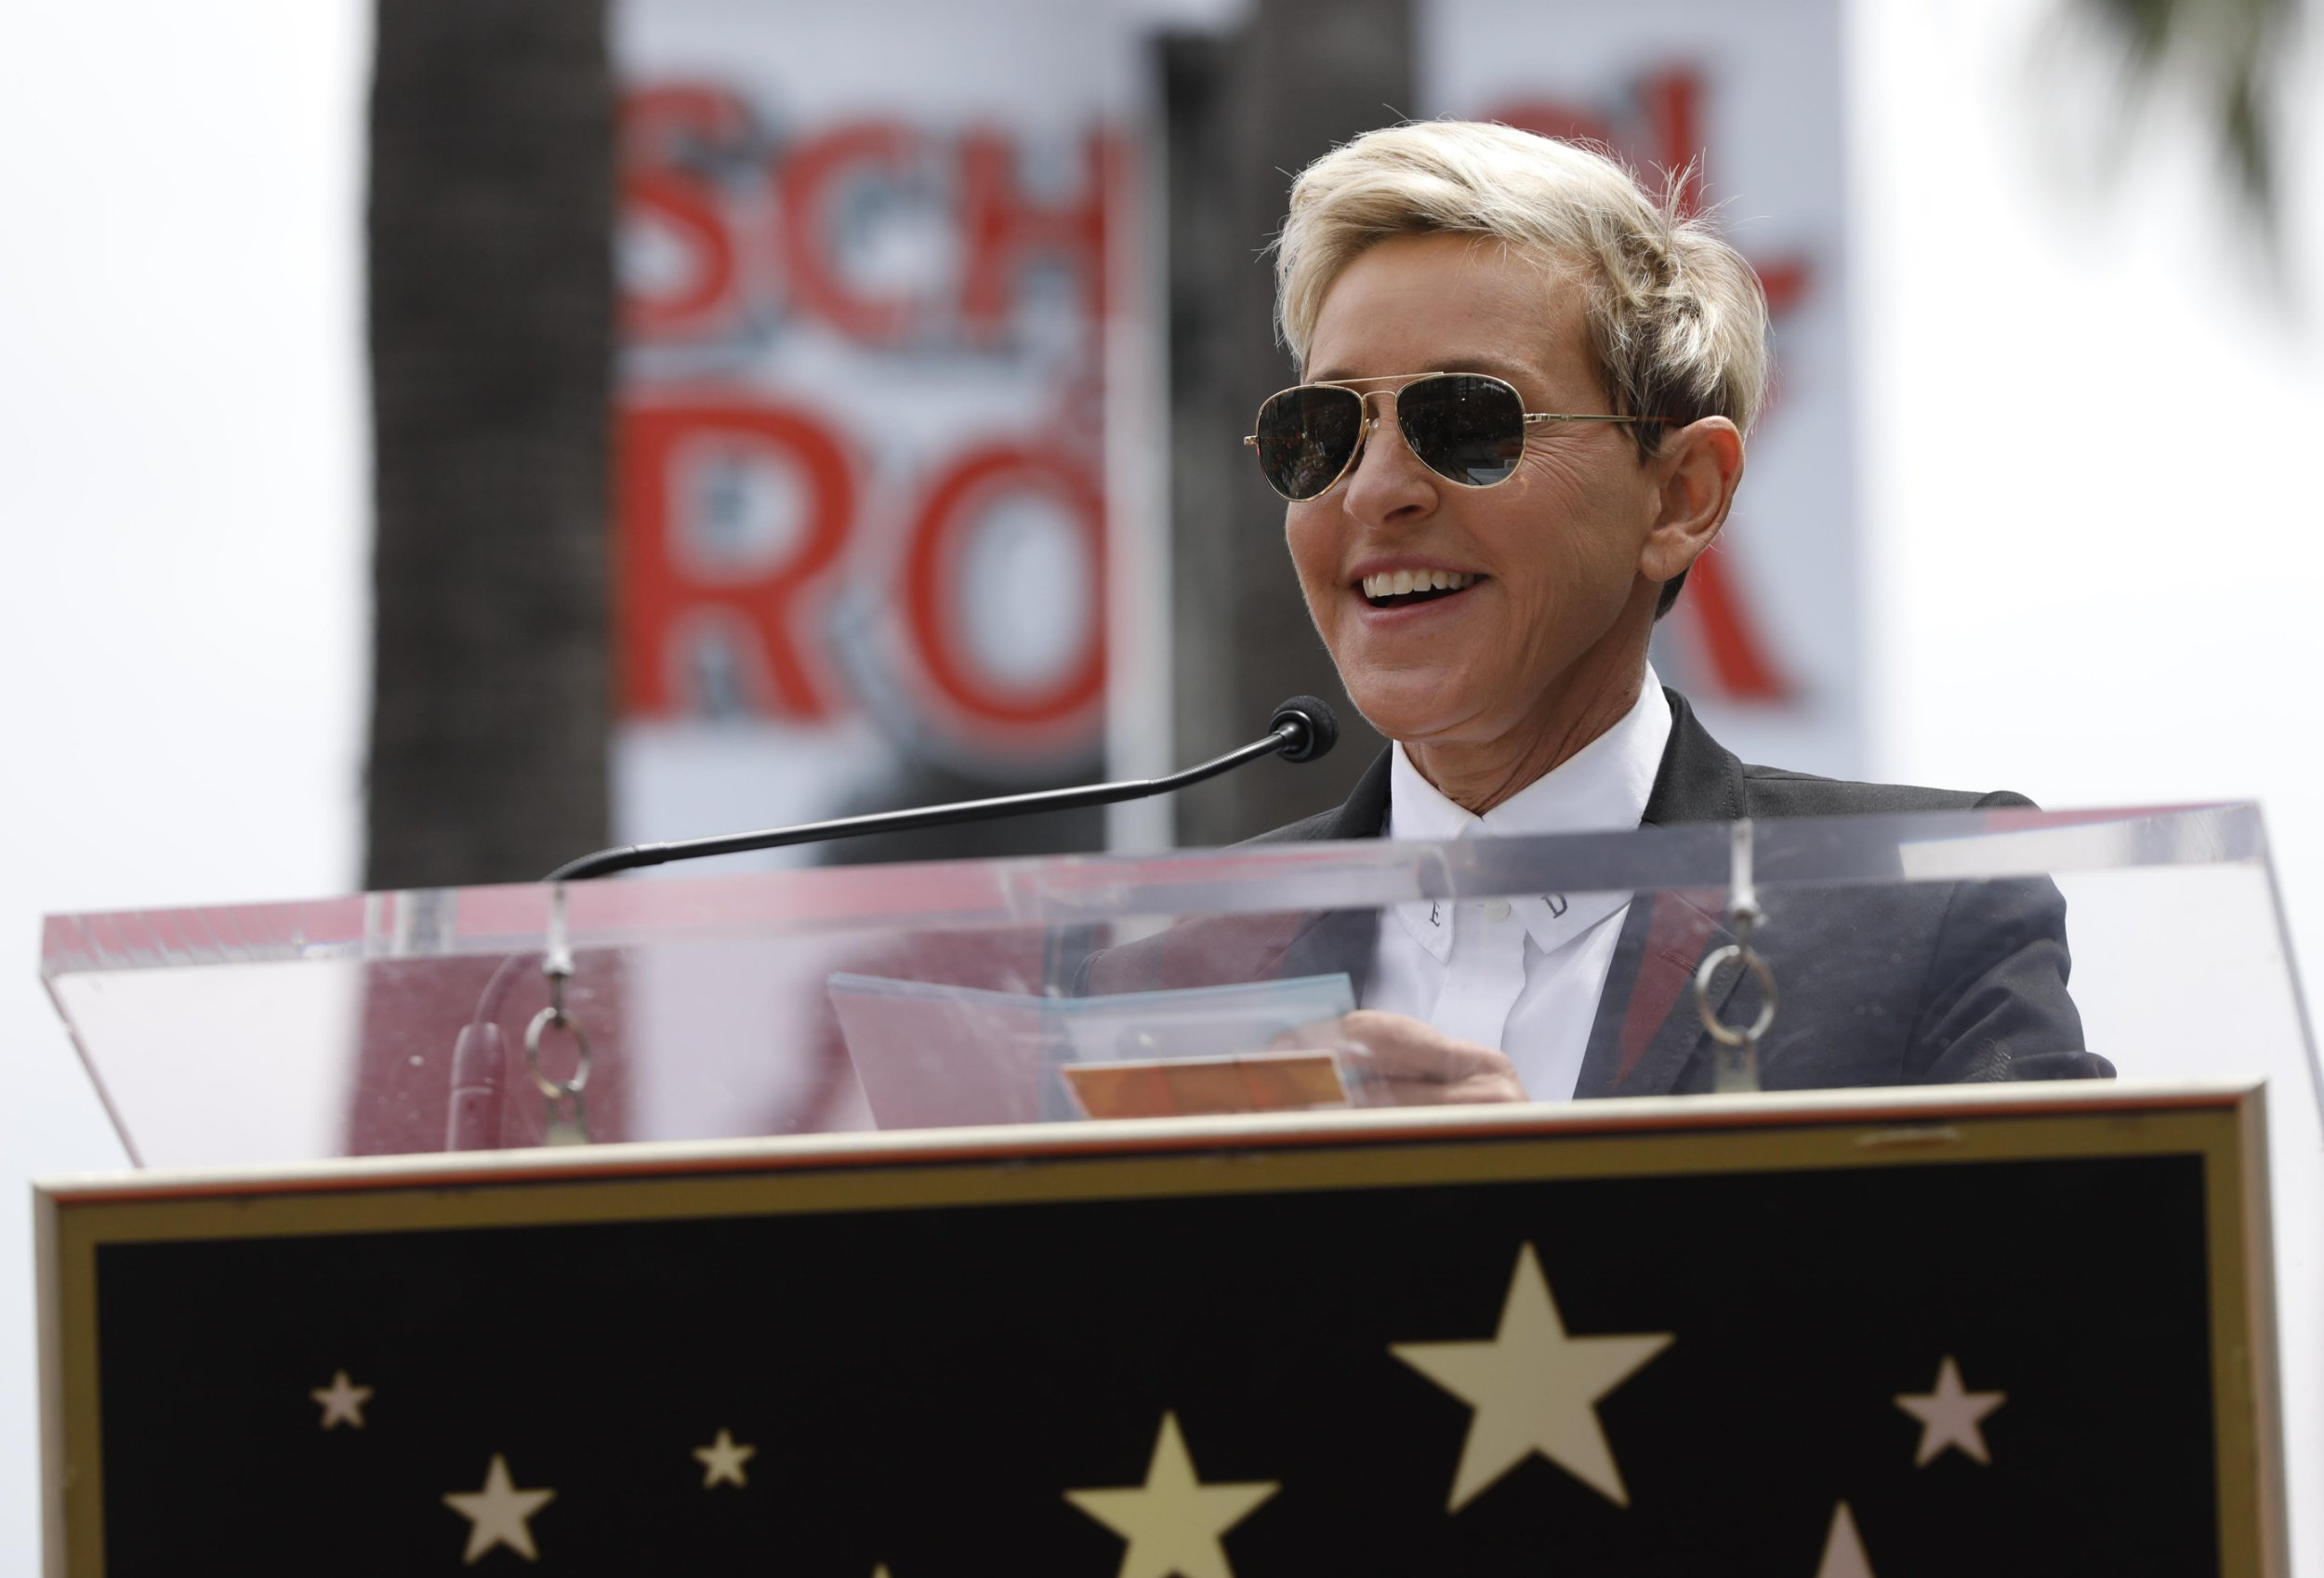 Ellen Degeneres speaks during the ceremony for the unveiling of the star for American boy band *NSYNC on the Hollywood Walk of Fame in Los Angeles, U.S. April 30, 2018. REUTERS/Mario Anzuoni